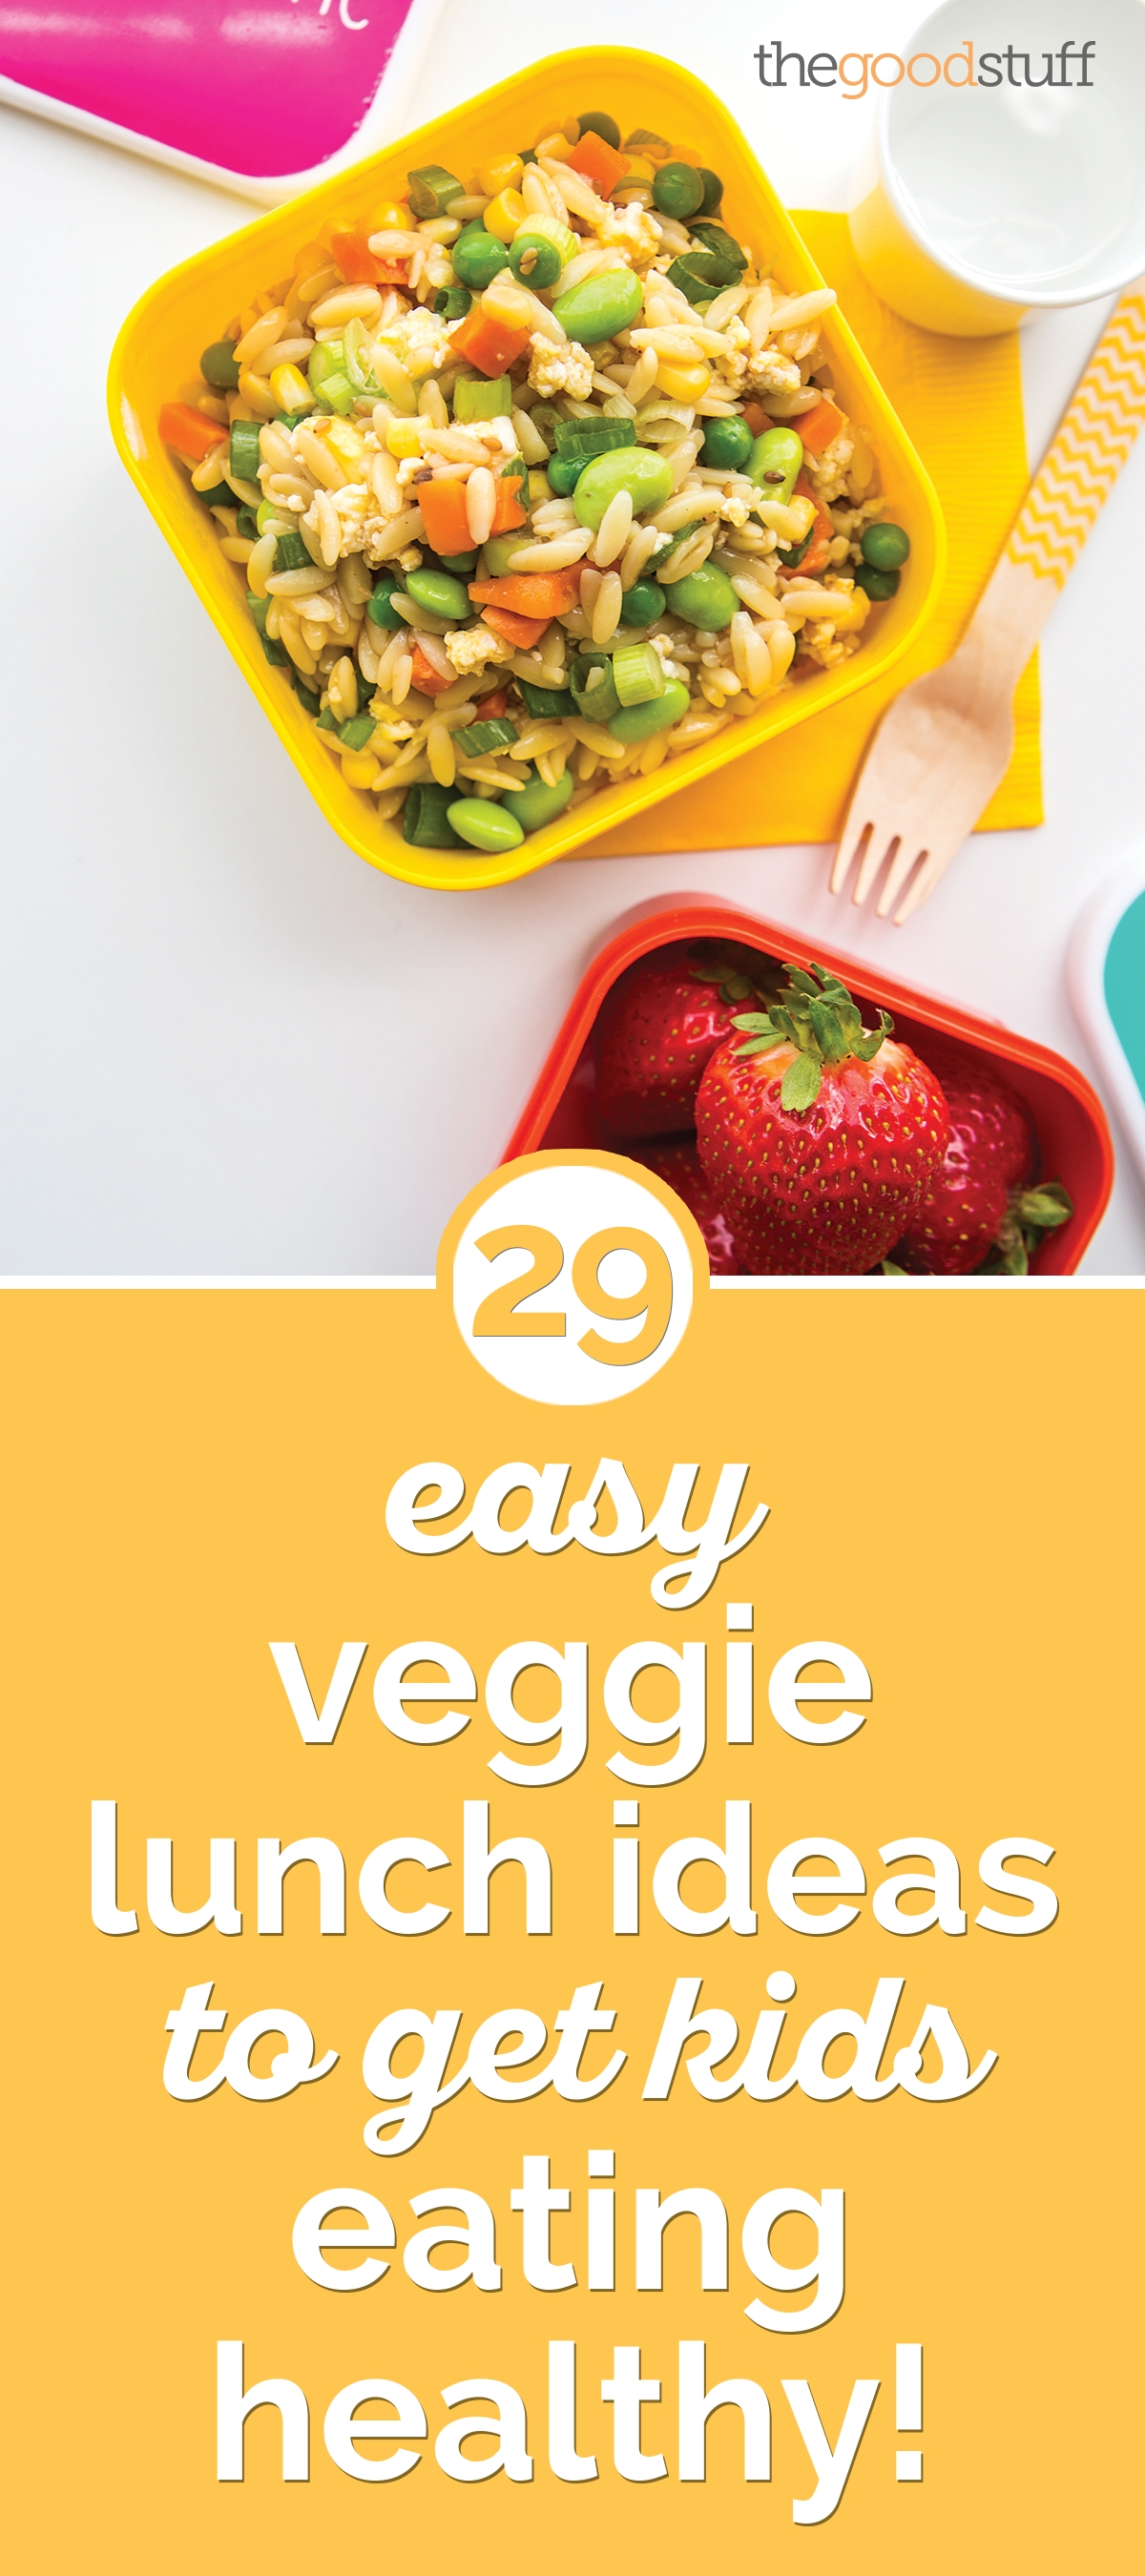 10 Attractive Easy Healthy Lunch Ideas For Kids 29 easy veggie lunch ideas to get kids eating healthy thegoodstuff 2020